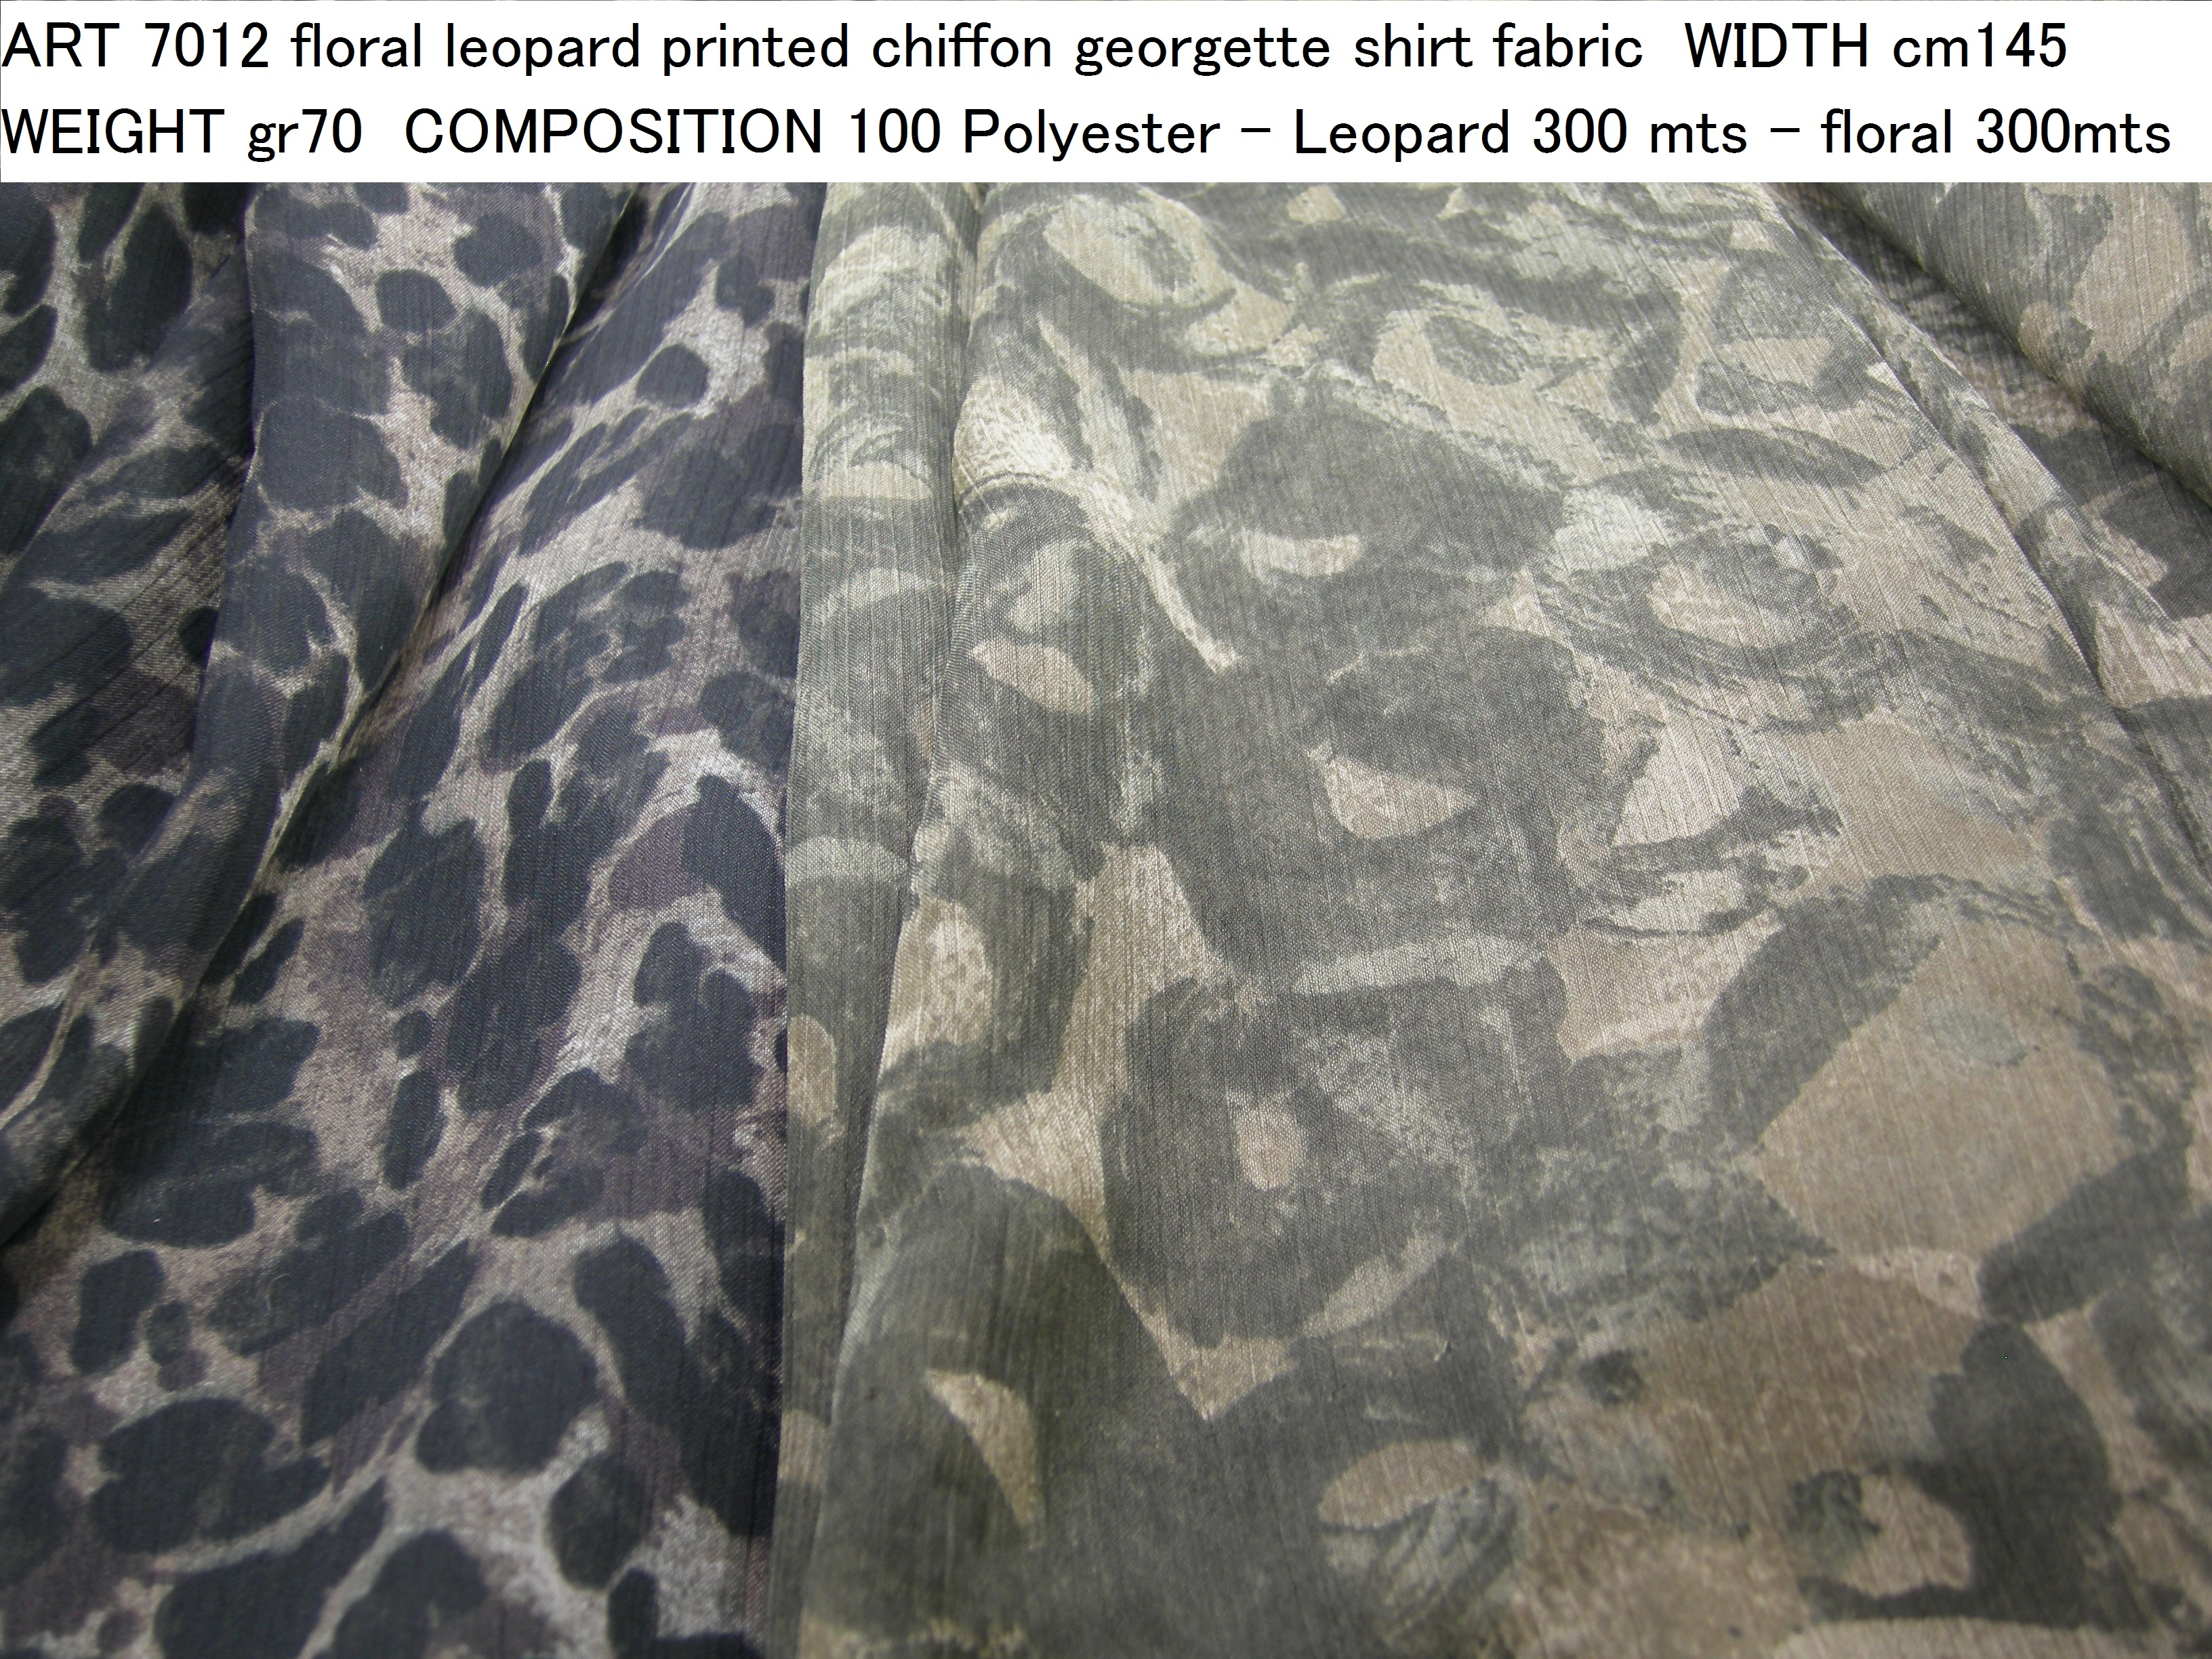 ART 7012 floral leopard printed chiffon georgette shirt fabric WIDTH cm145 WEIGHT gr70 COMPOSITION 100 Polyester - Leopard 300 mts – floral 300mts